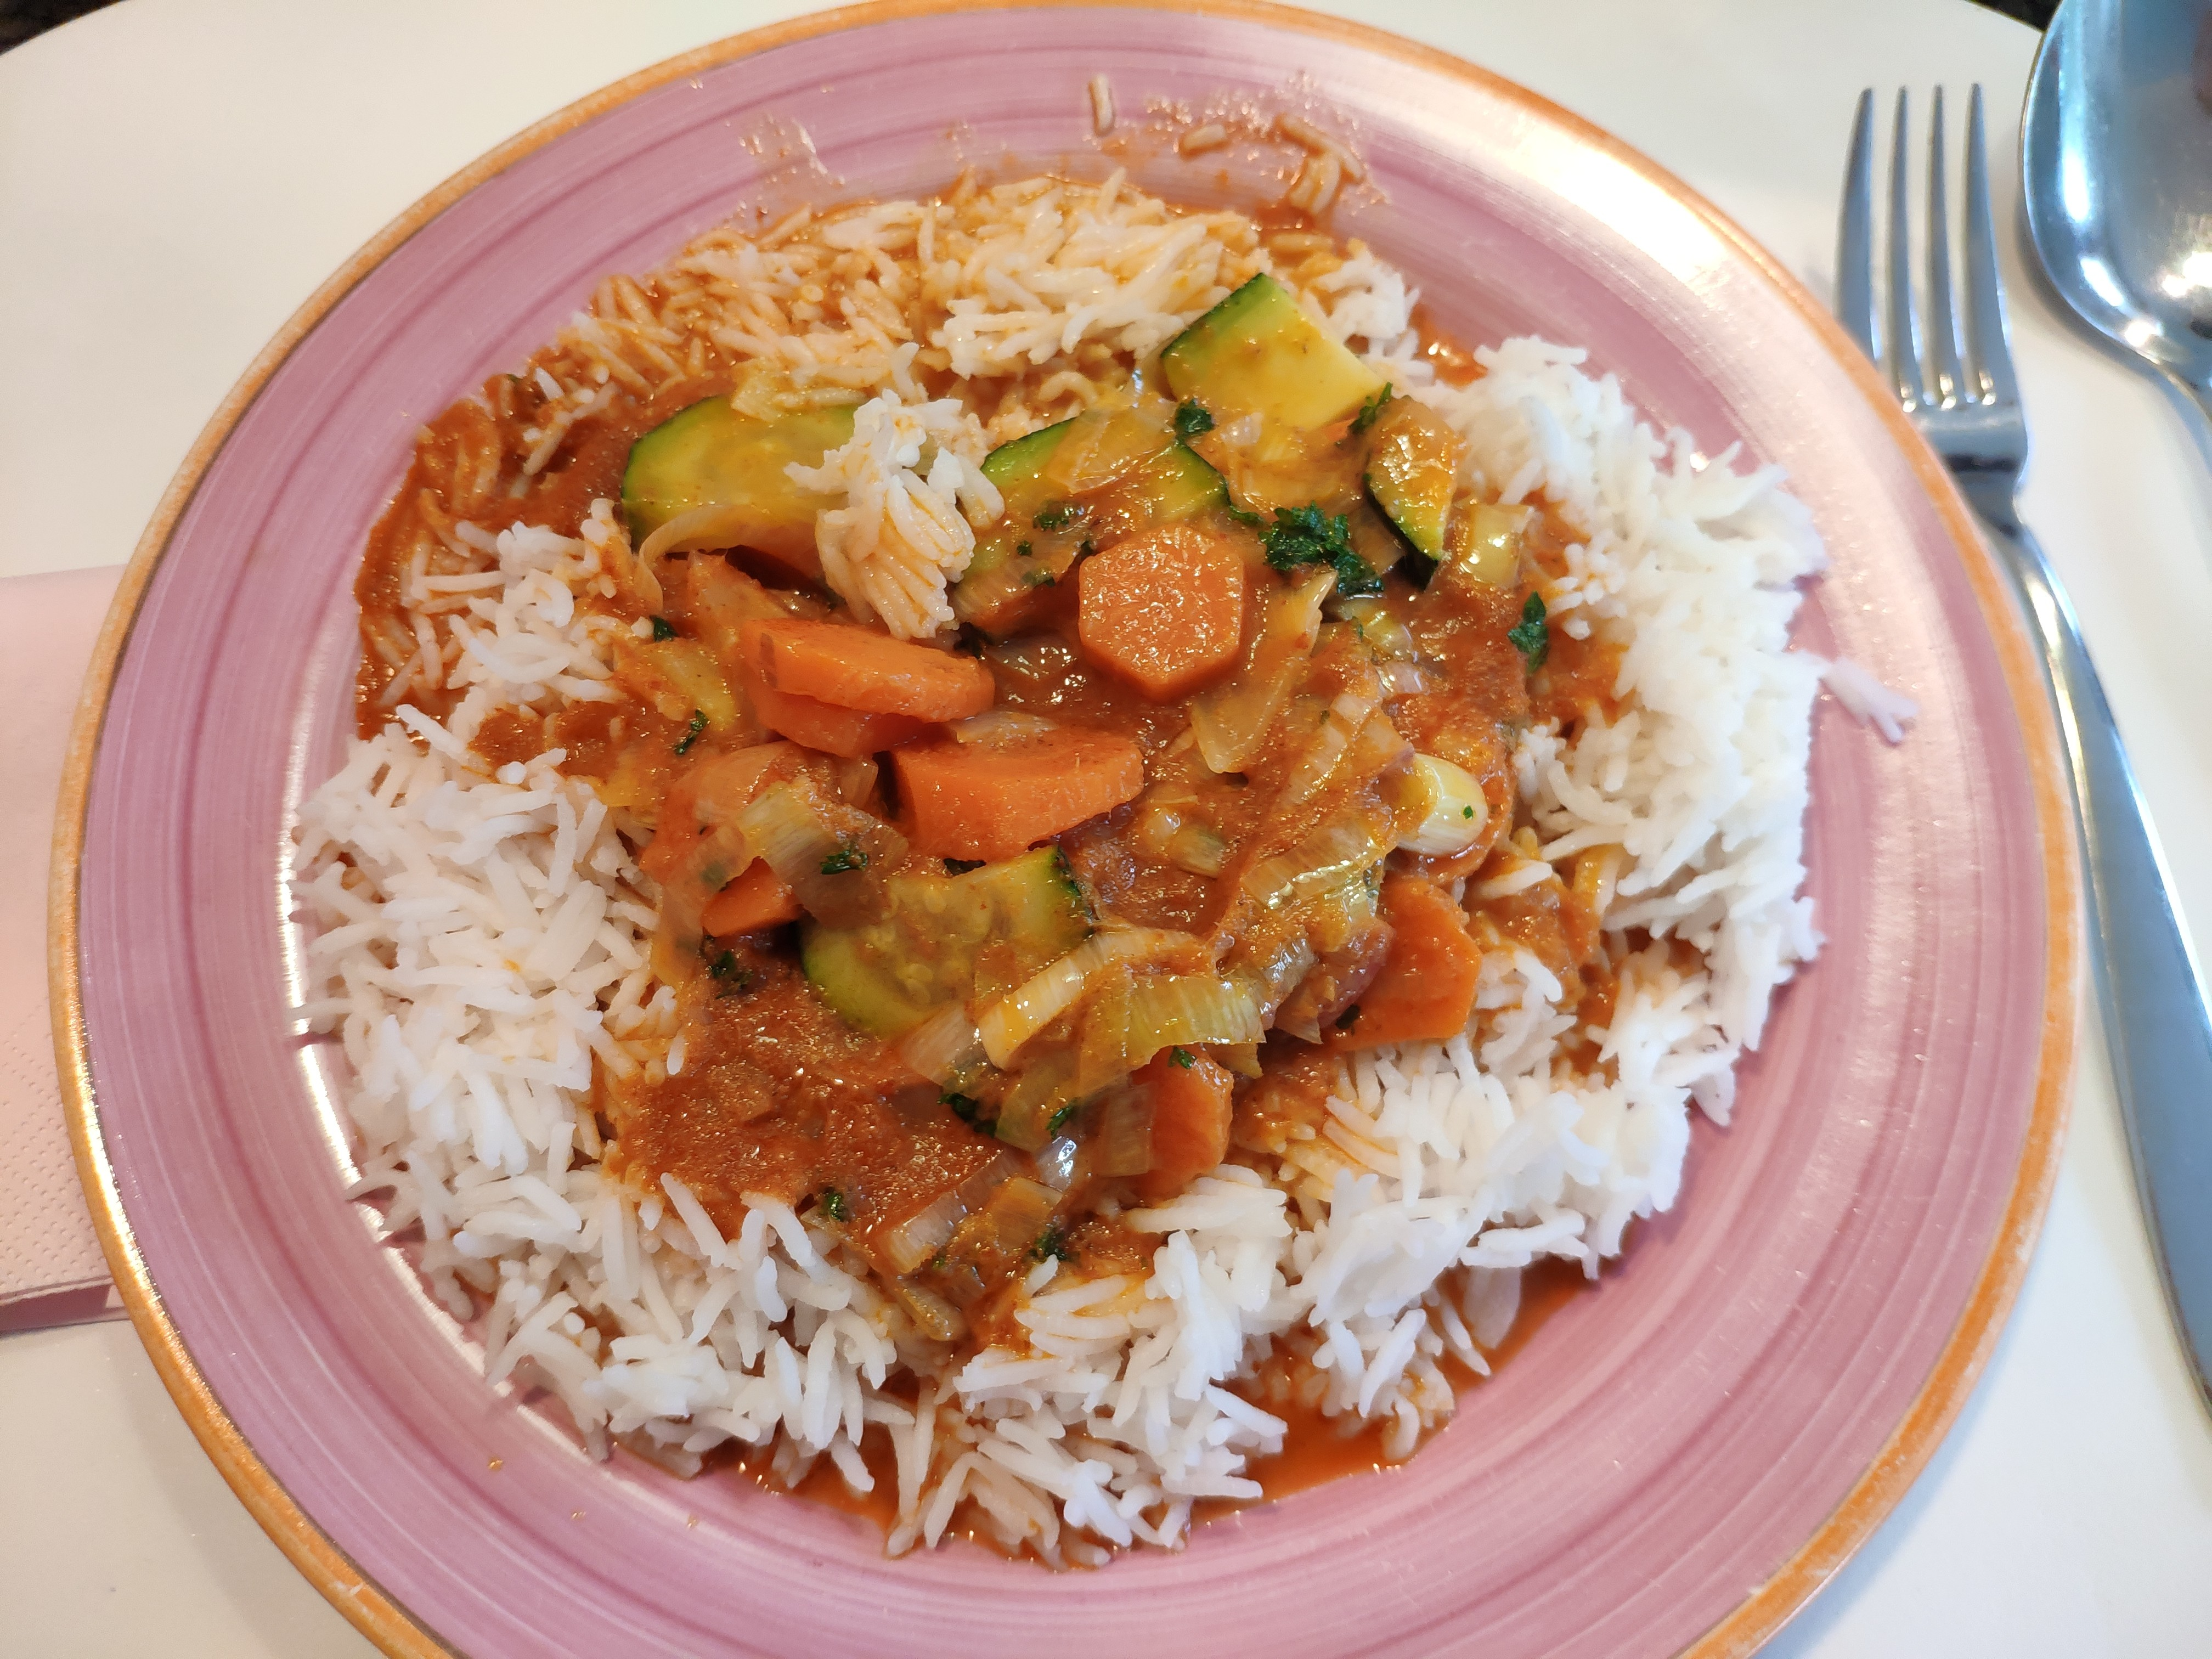 https://foodloader.net/nico_2020-05-12_rotes-curry-mit-reis.jpg